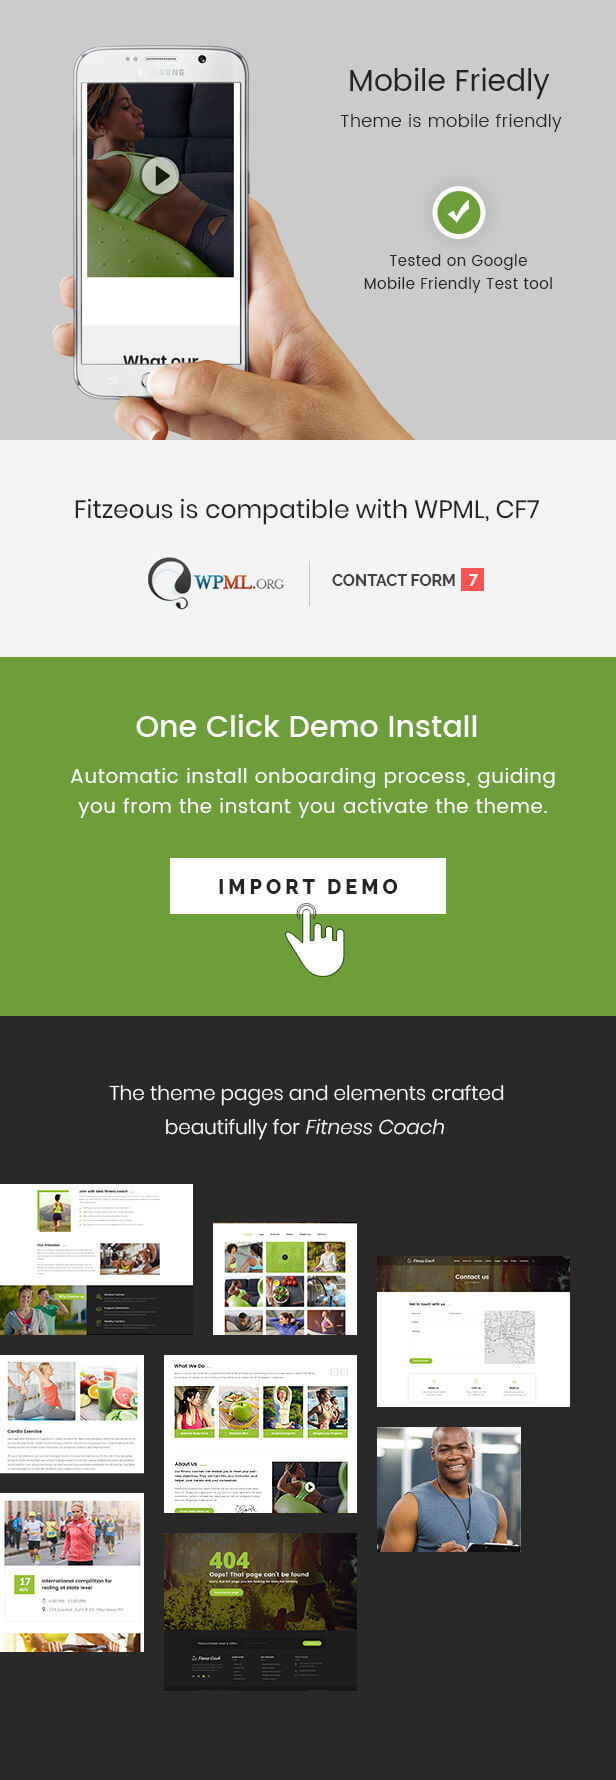 Fitzeous - Personal Fitness Trainer WordPress Theme - 3